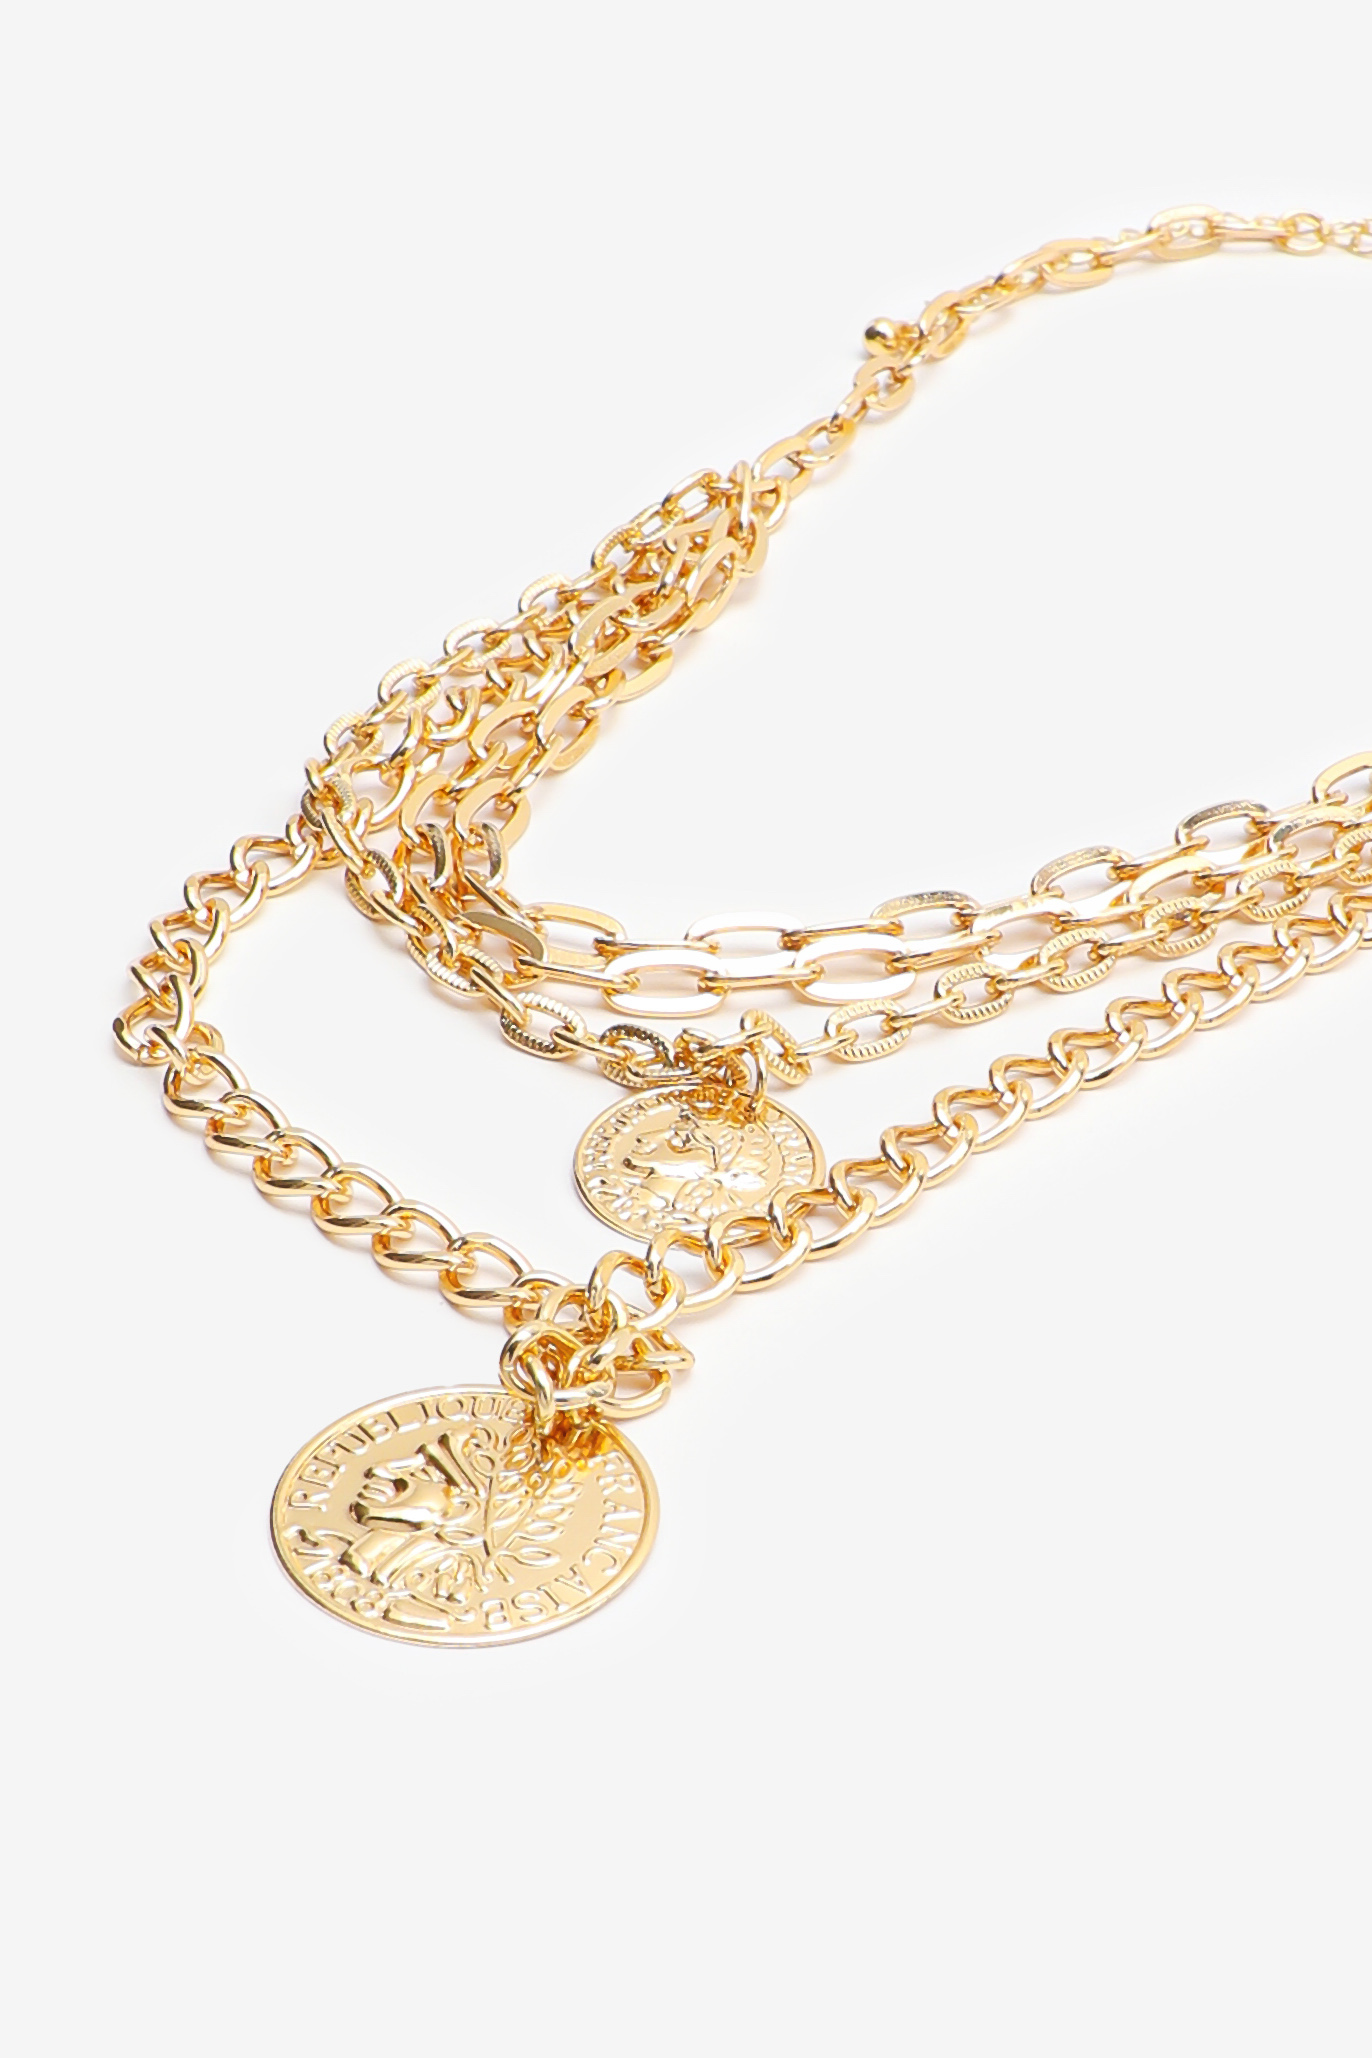 Layered Chain Necklace with Coins